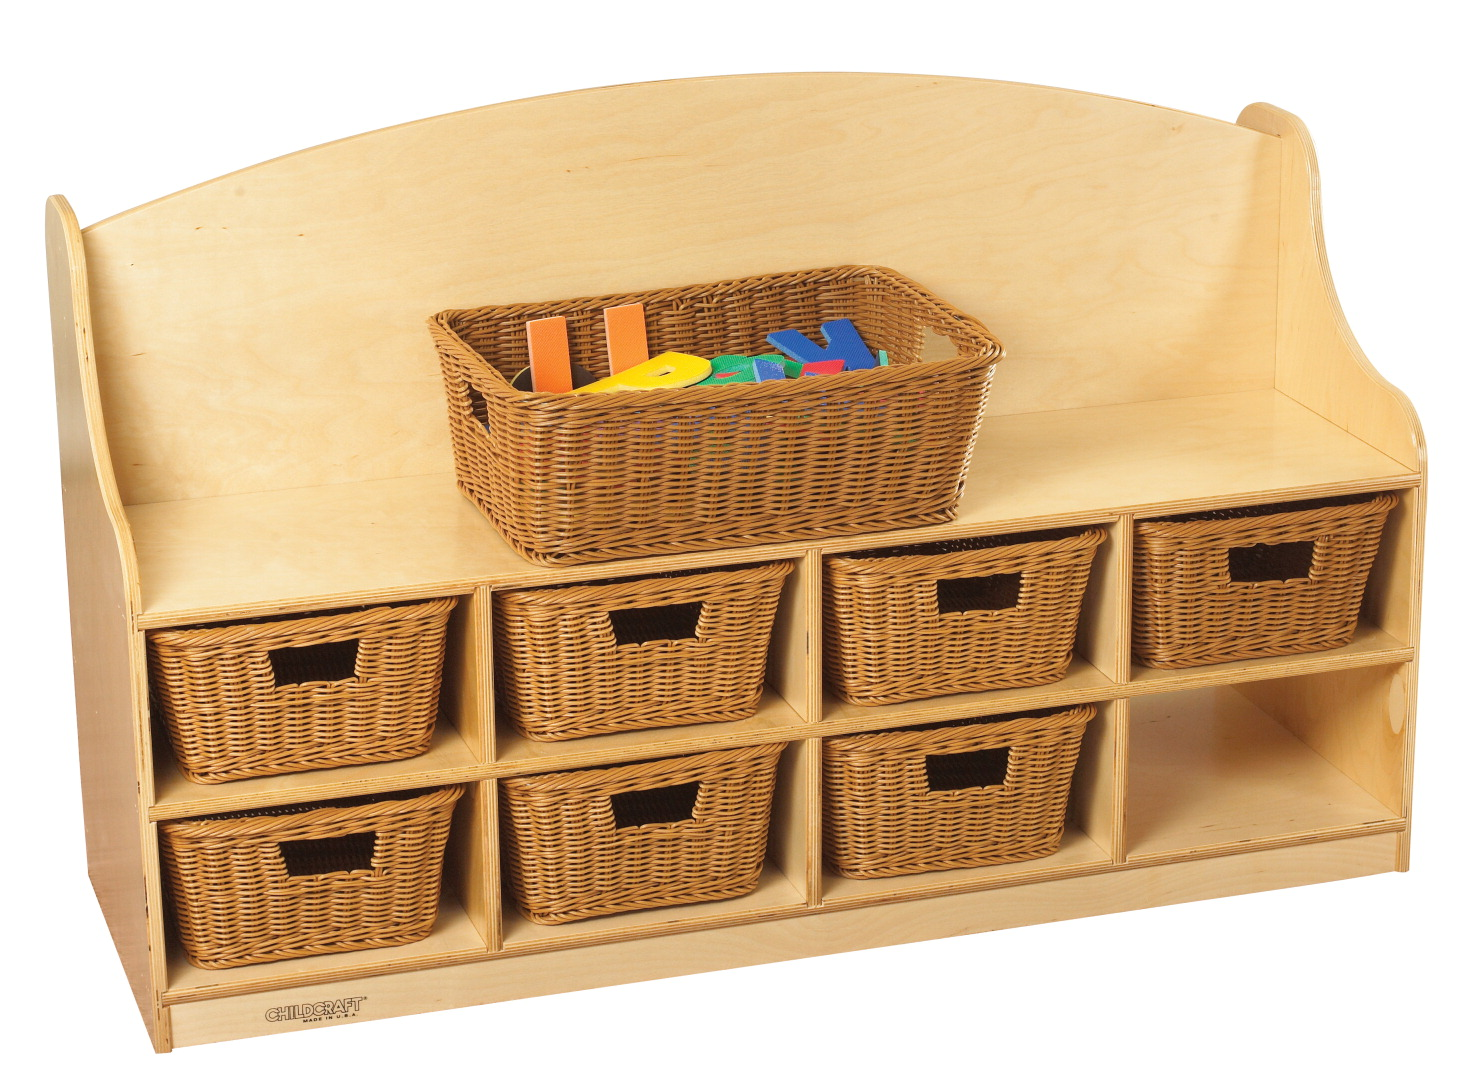 Peachy Childcraft Reading Bench And Storage Unit 8 Medium Baskets 47 3 4 X 16 3 4 X 30 Inches Andrewgaddart Wooden Chair Designs For Living Room Andrewgaddartcom